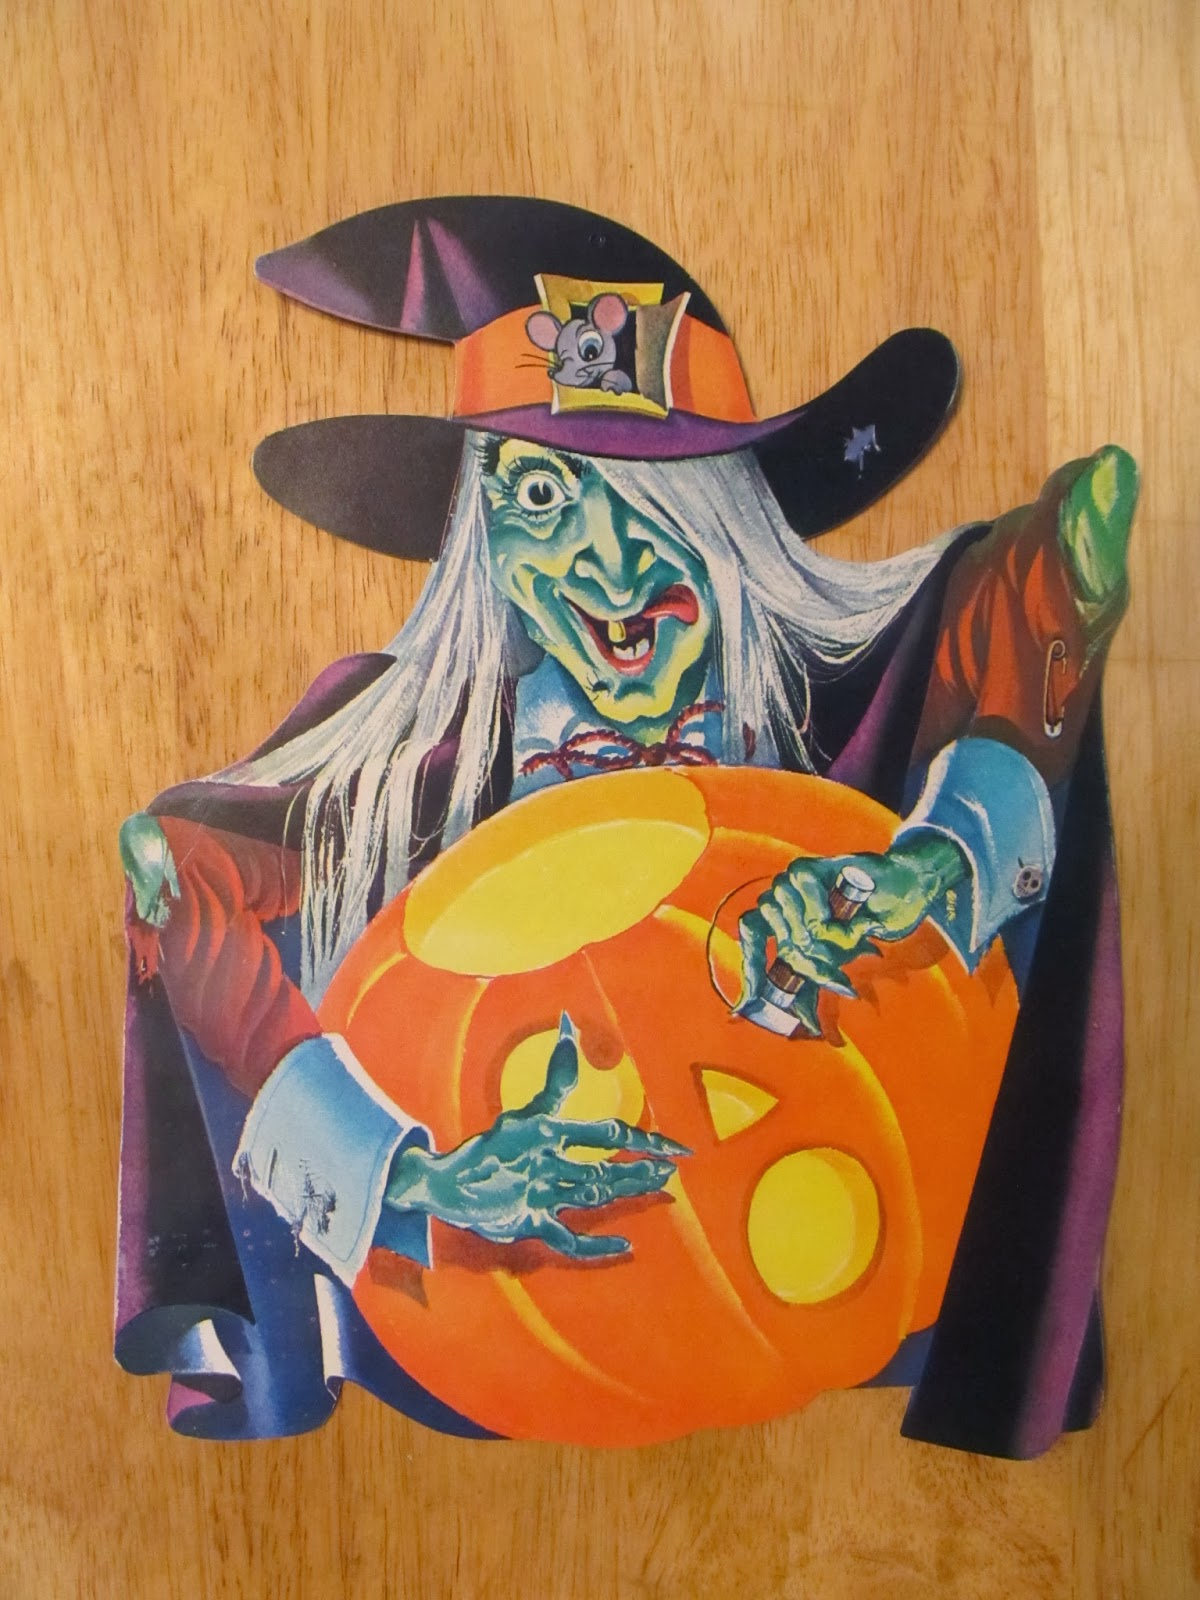 Vintage halloween paper decorations - Vintage Paper Halloween Decorations